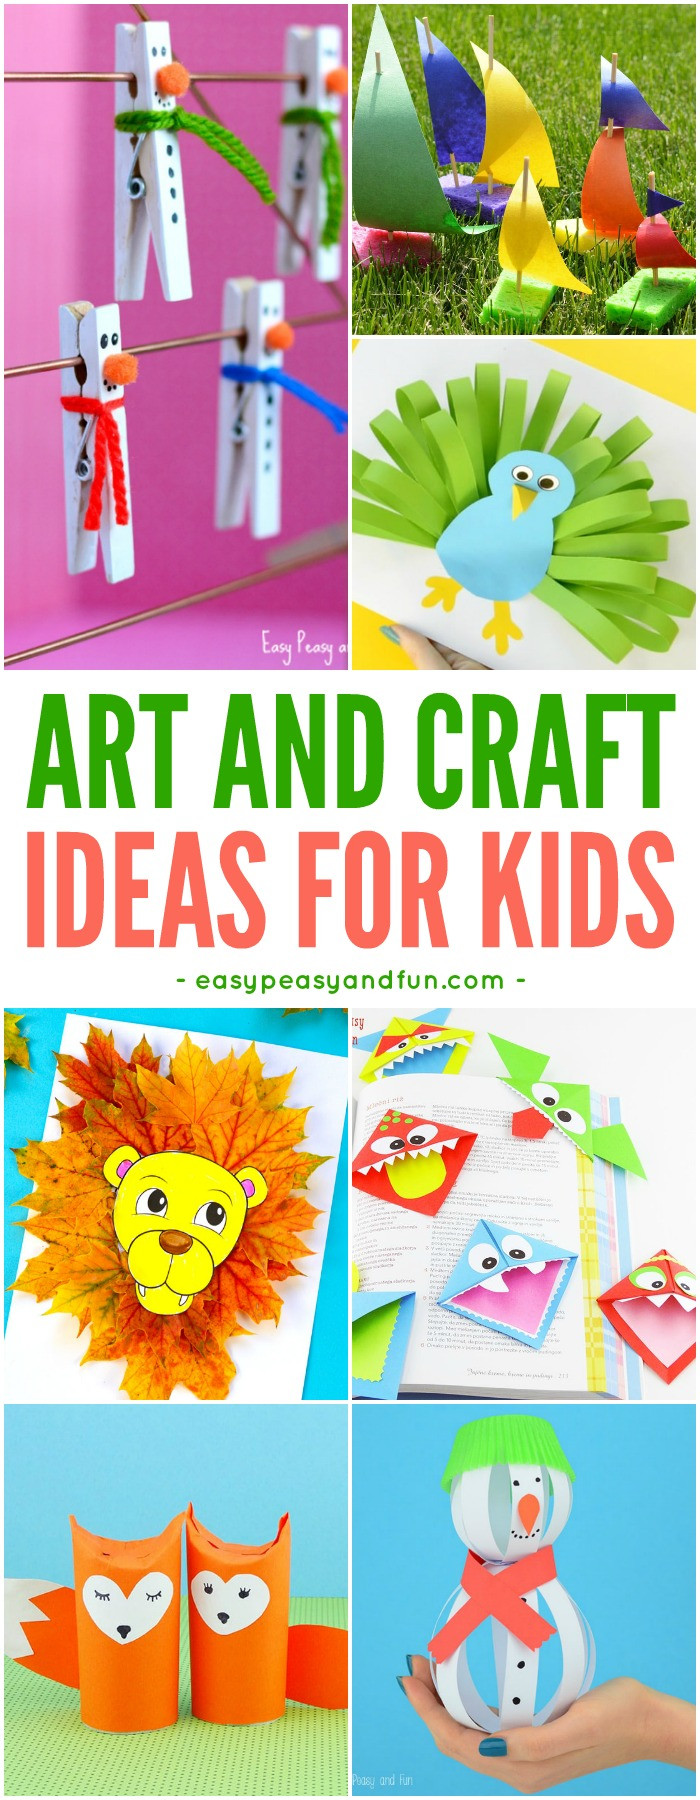 Art And Craft Ideas For Kids  Crafts For Kids Tons of Art and Craft Ideas for Kids to